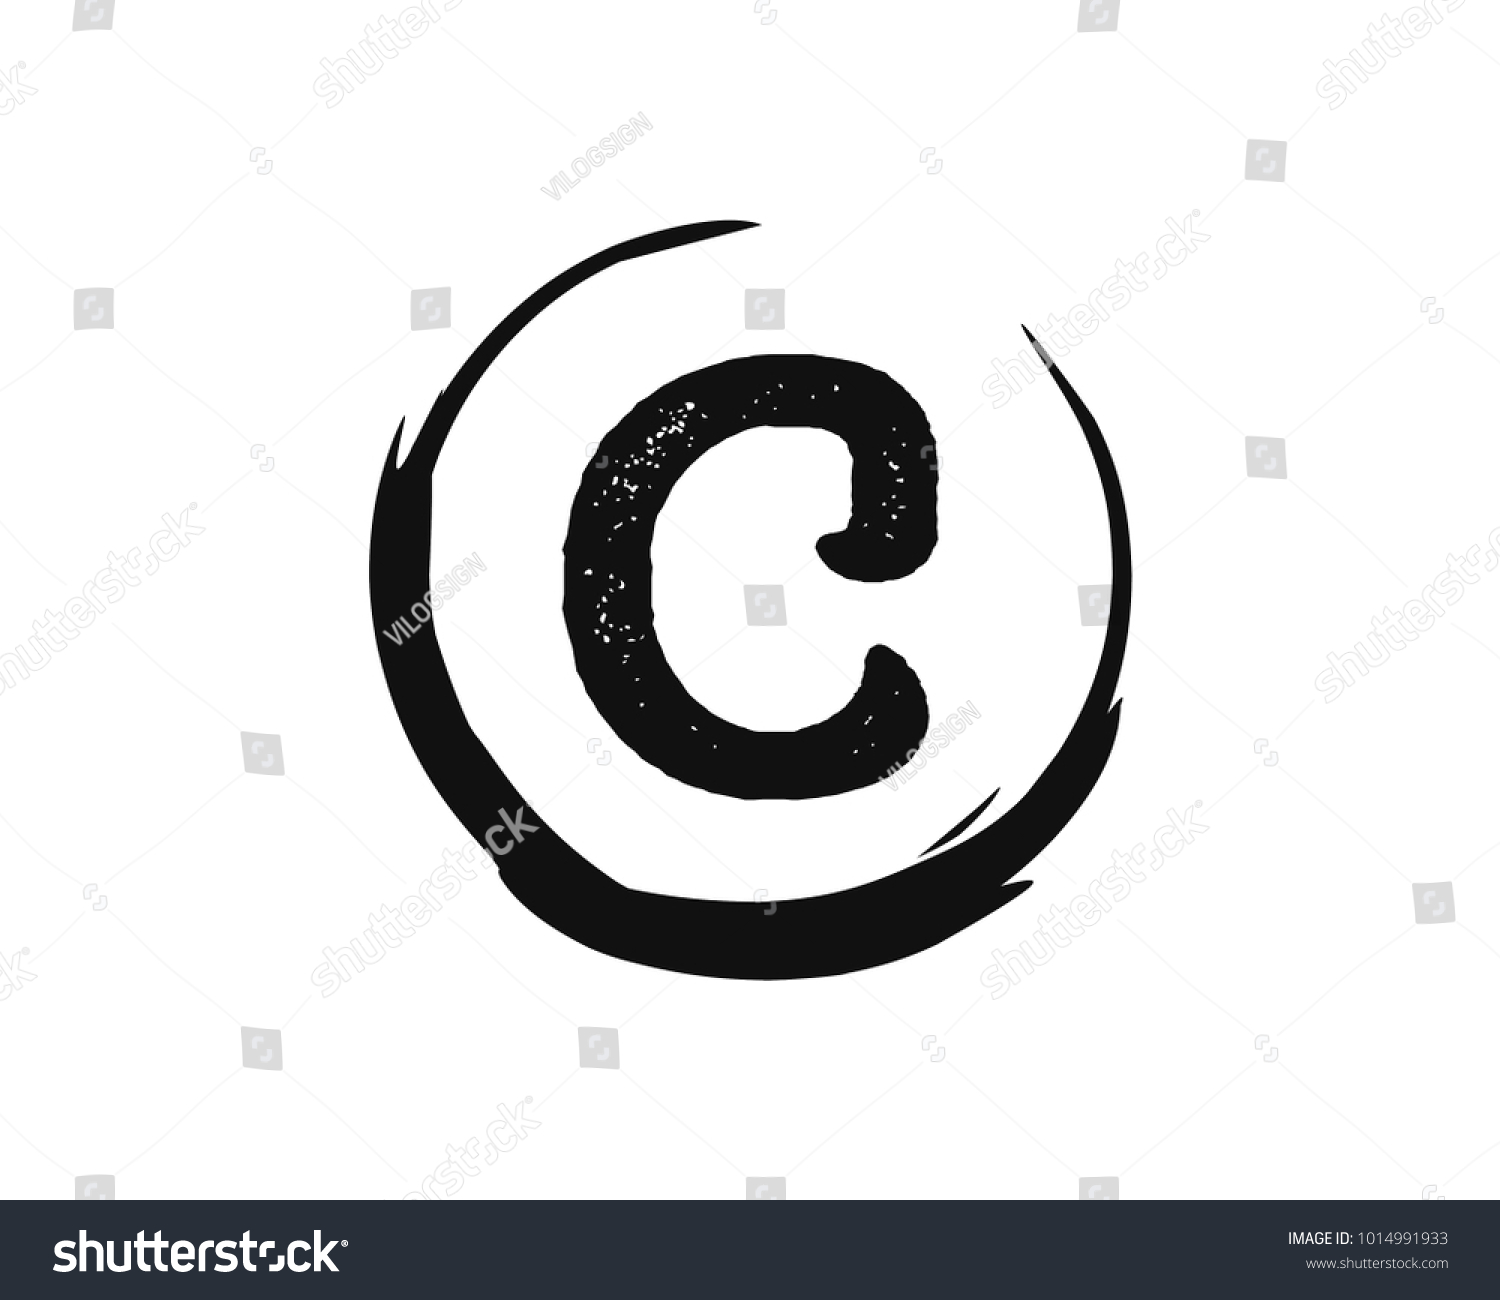 Classic circle initial name letter c stock vector 1014991933 classic circle with initial name letter c icon symbol logo vector biocorpaavc Images